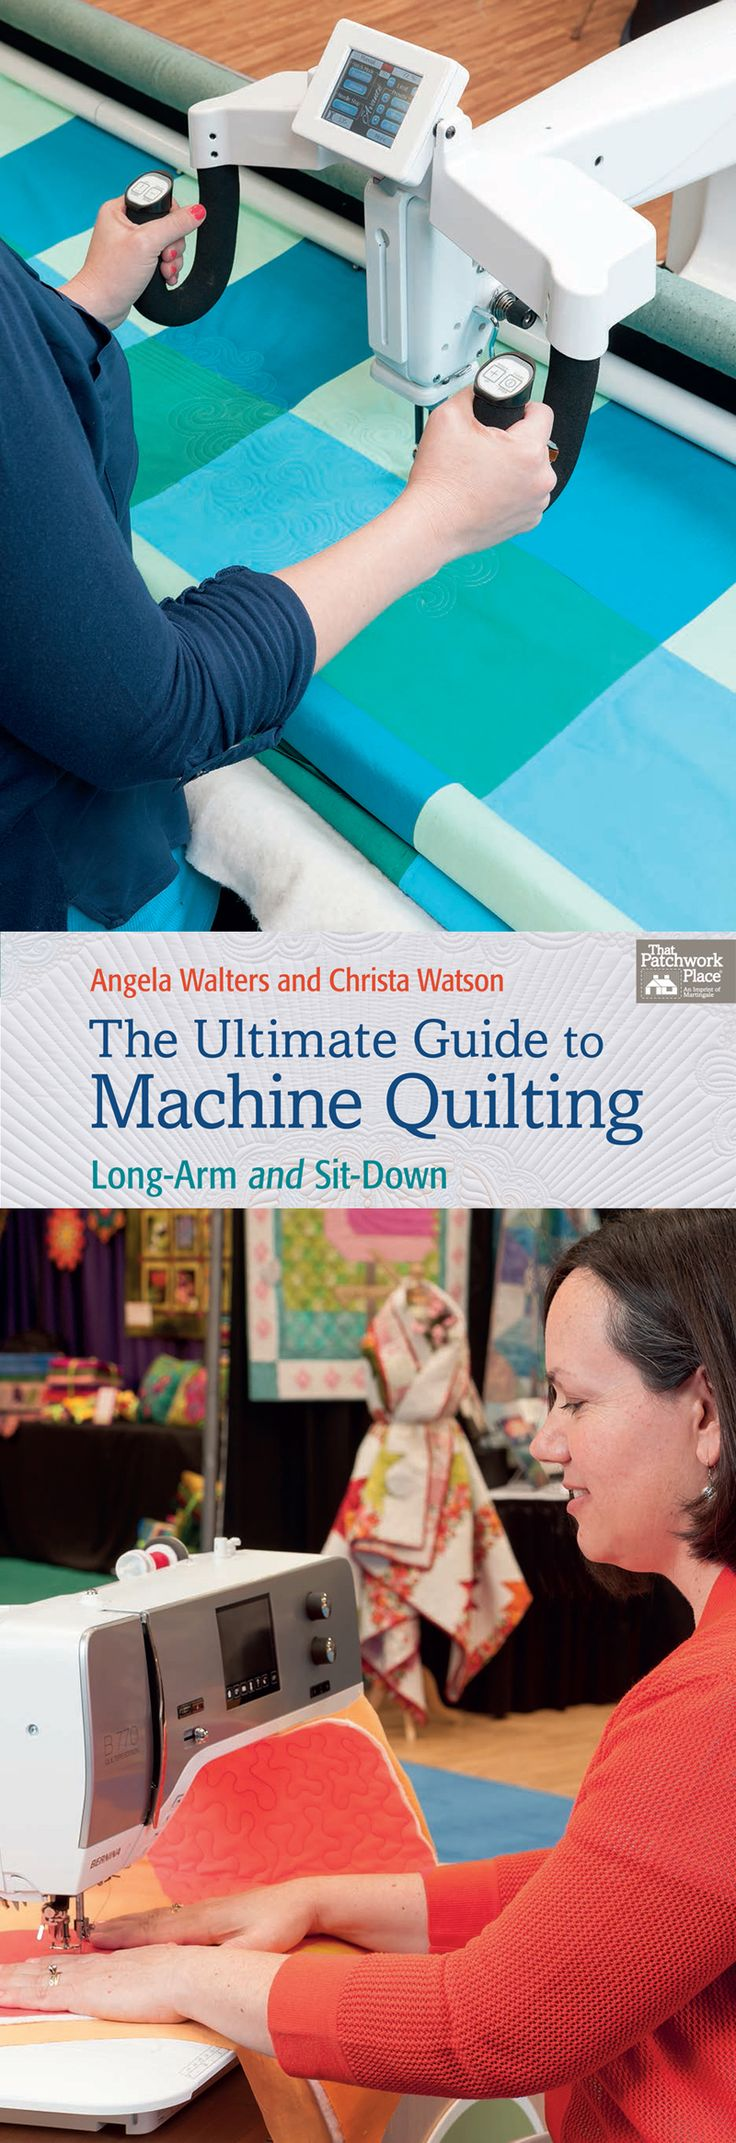 Get ready for a whole new world of machine-quilting freedom! Two machine-quilting masters have come together, each to share her unique experience and expertise, in The Ultimate Guide to Machine Quilting - Angela Walters on the long-arm, Christa Watson on the home sewing machine. Ideas, techniques, advice, projects—they've got you covered in a resource that will last as long as you quilt.